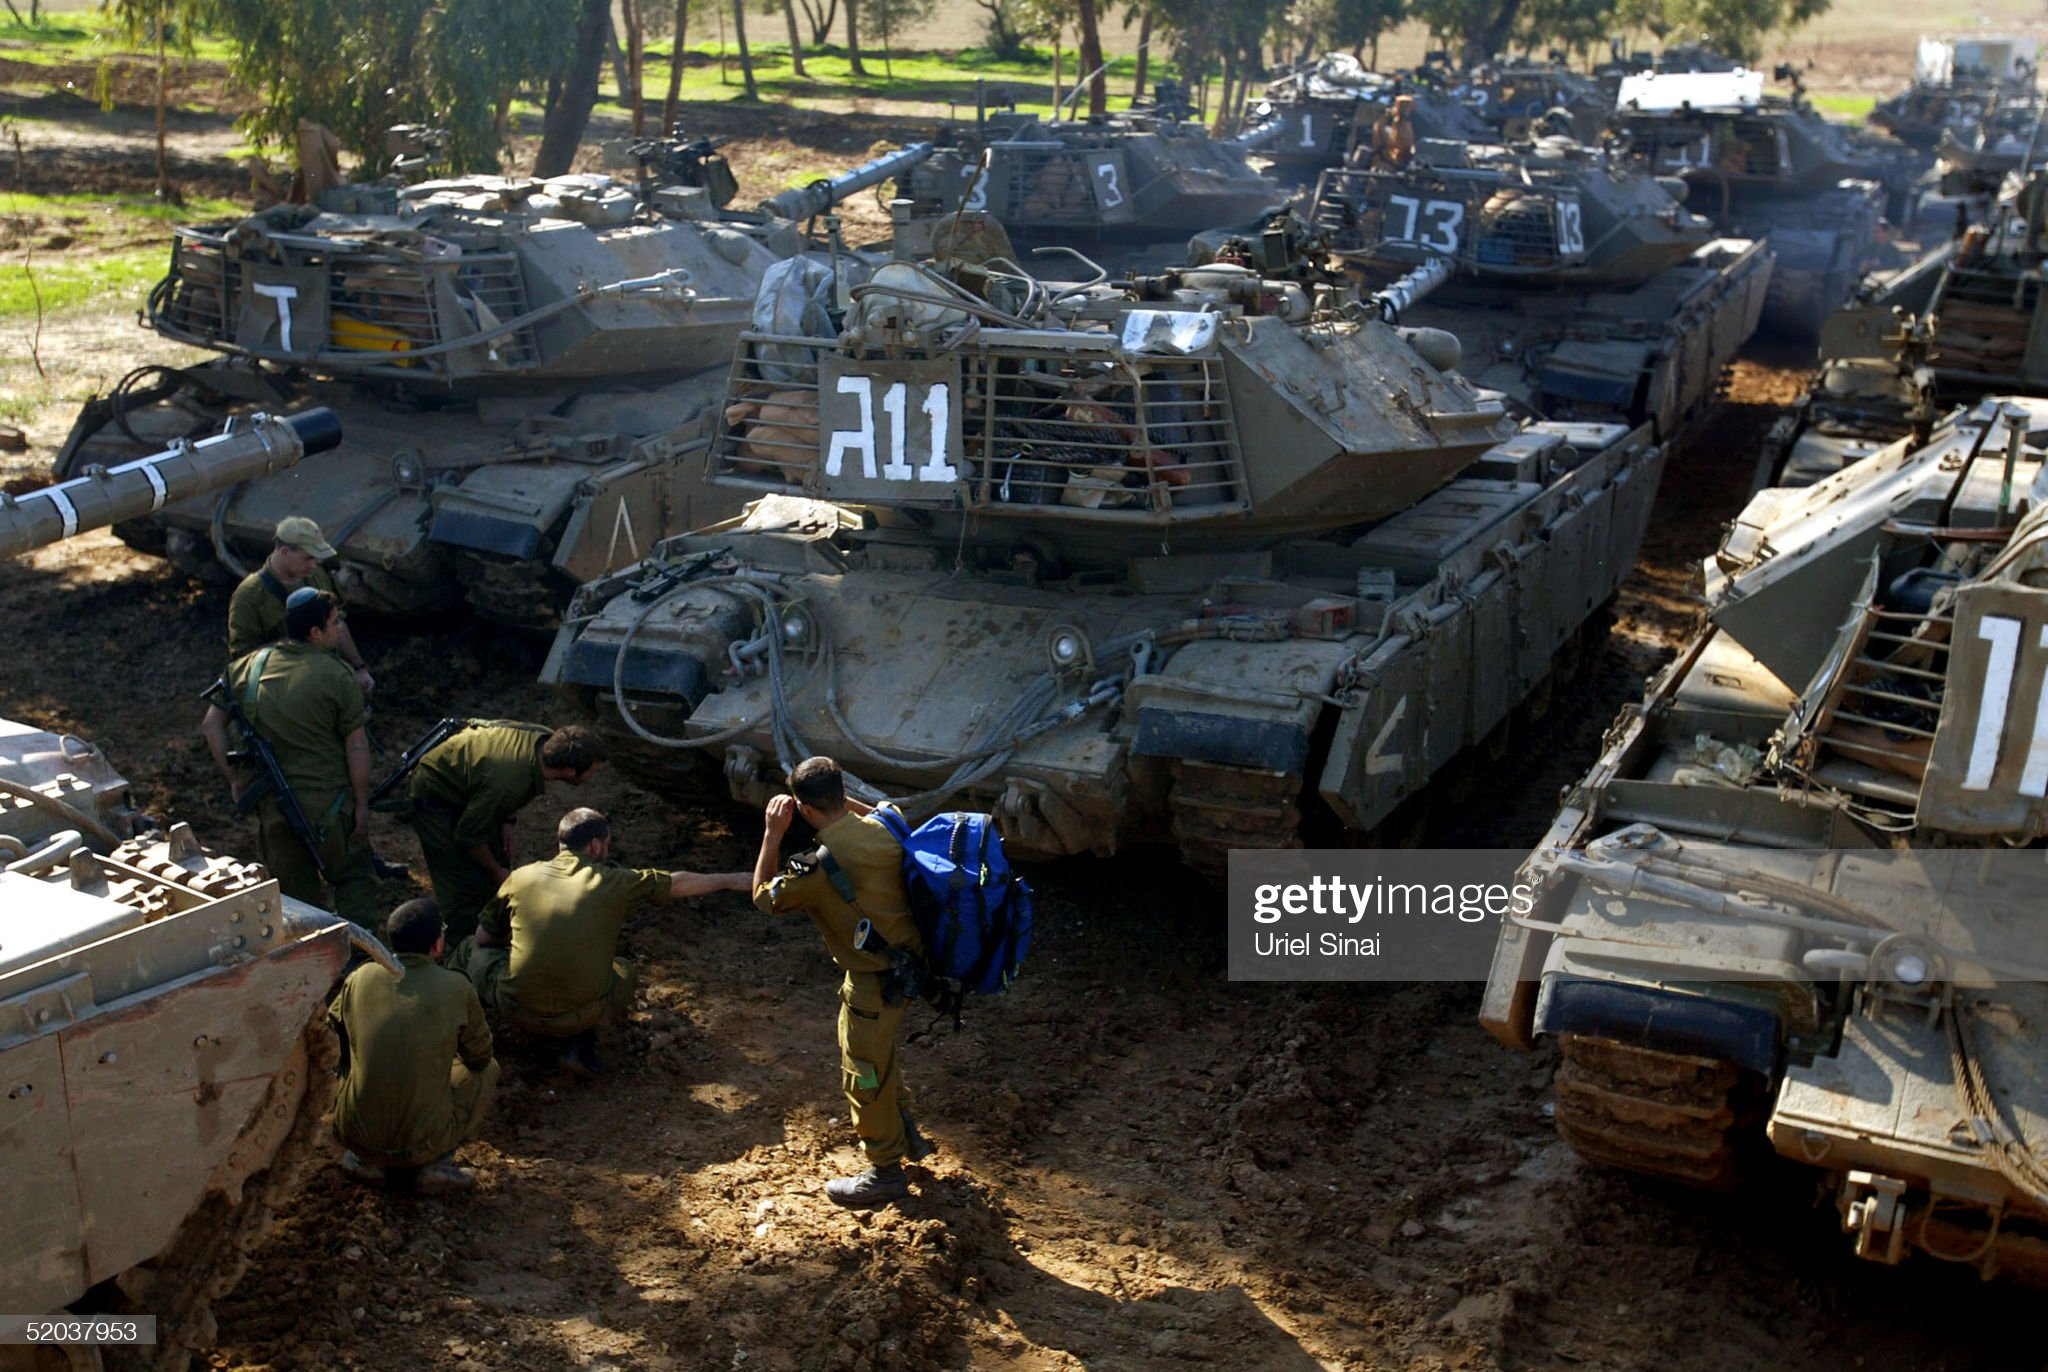 https://media.gettyimages.com/photos/israeli-sodiers-inspect-a-column-of-parked-tanks-near-the-border-of-picture-id52037953?s=2048x2048